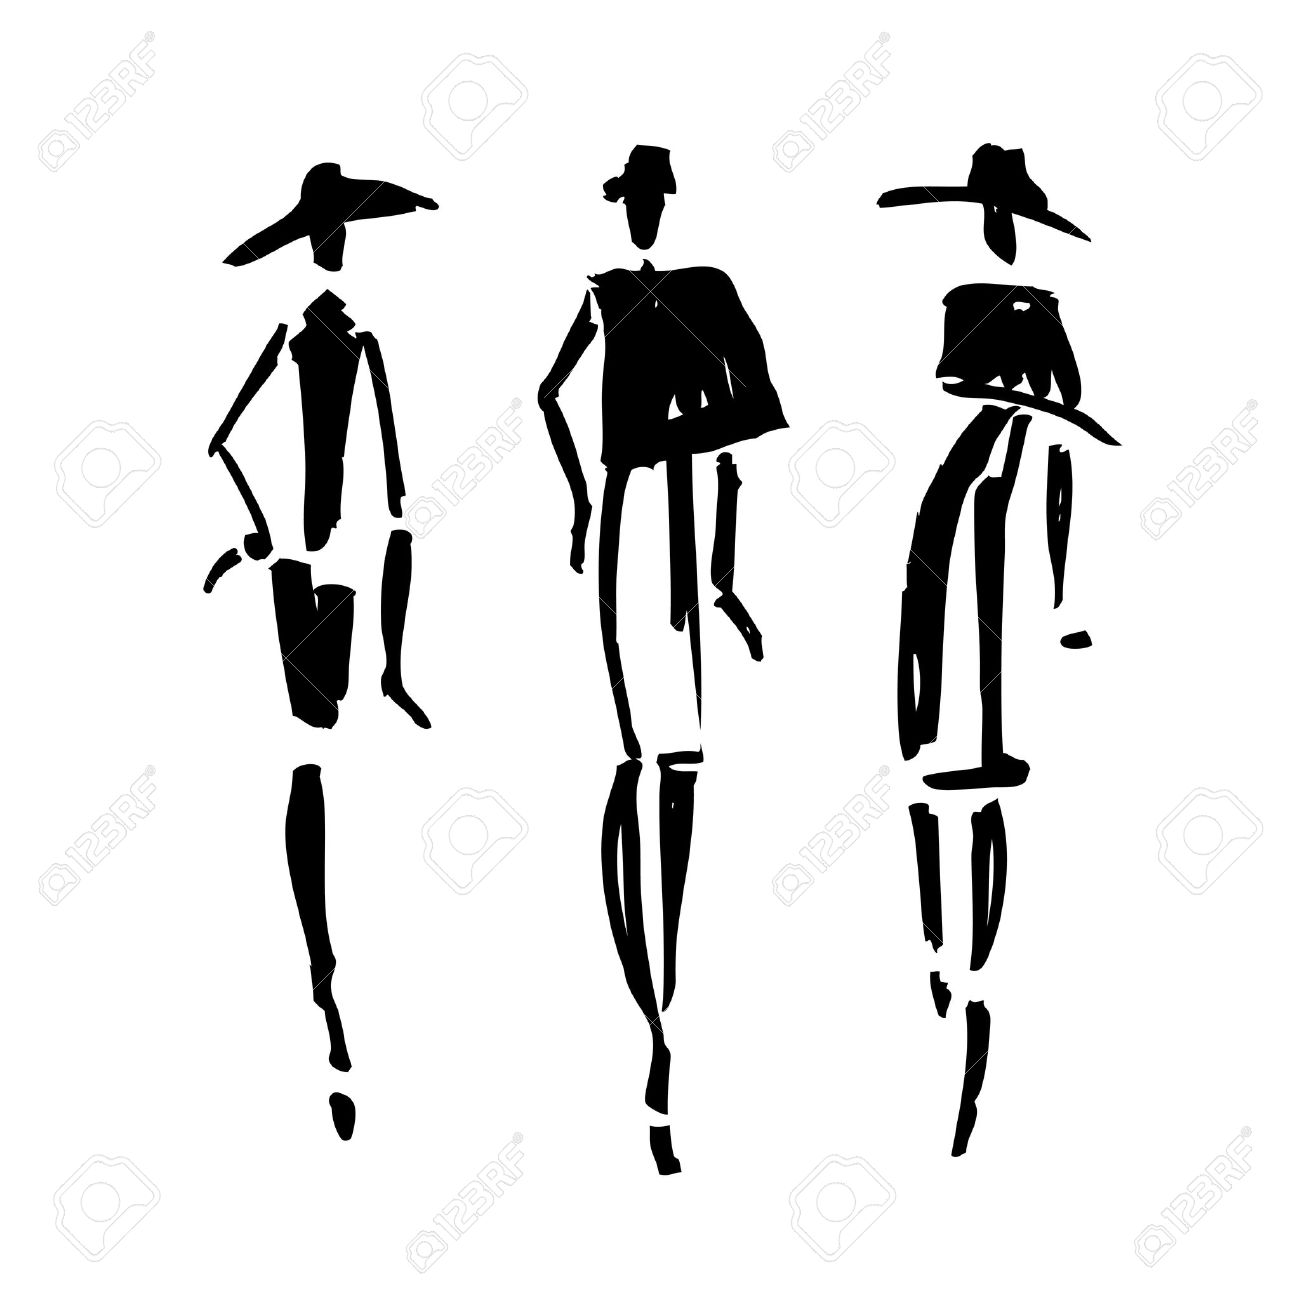 Beautiful Woman silhouette. Hand drawn fashion illustration. Stock Vector - 47537245